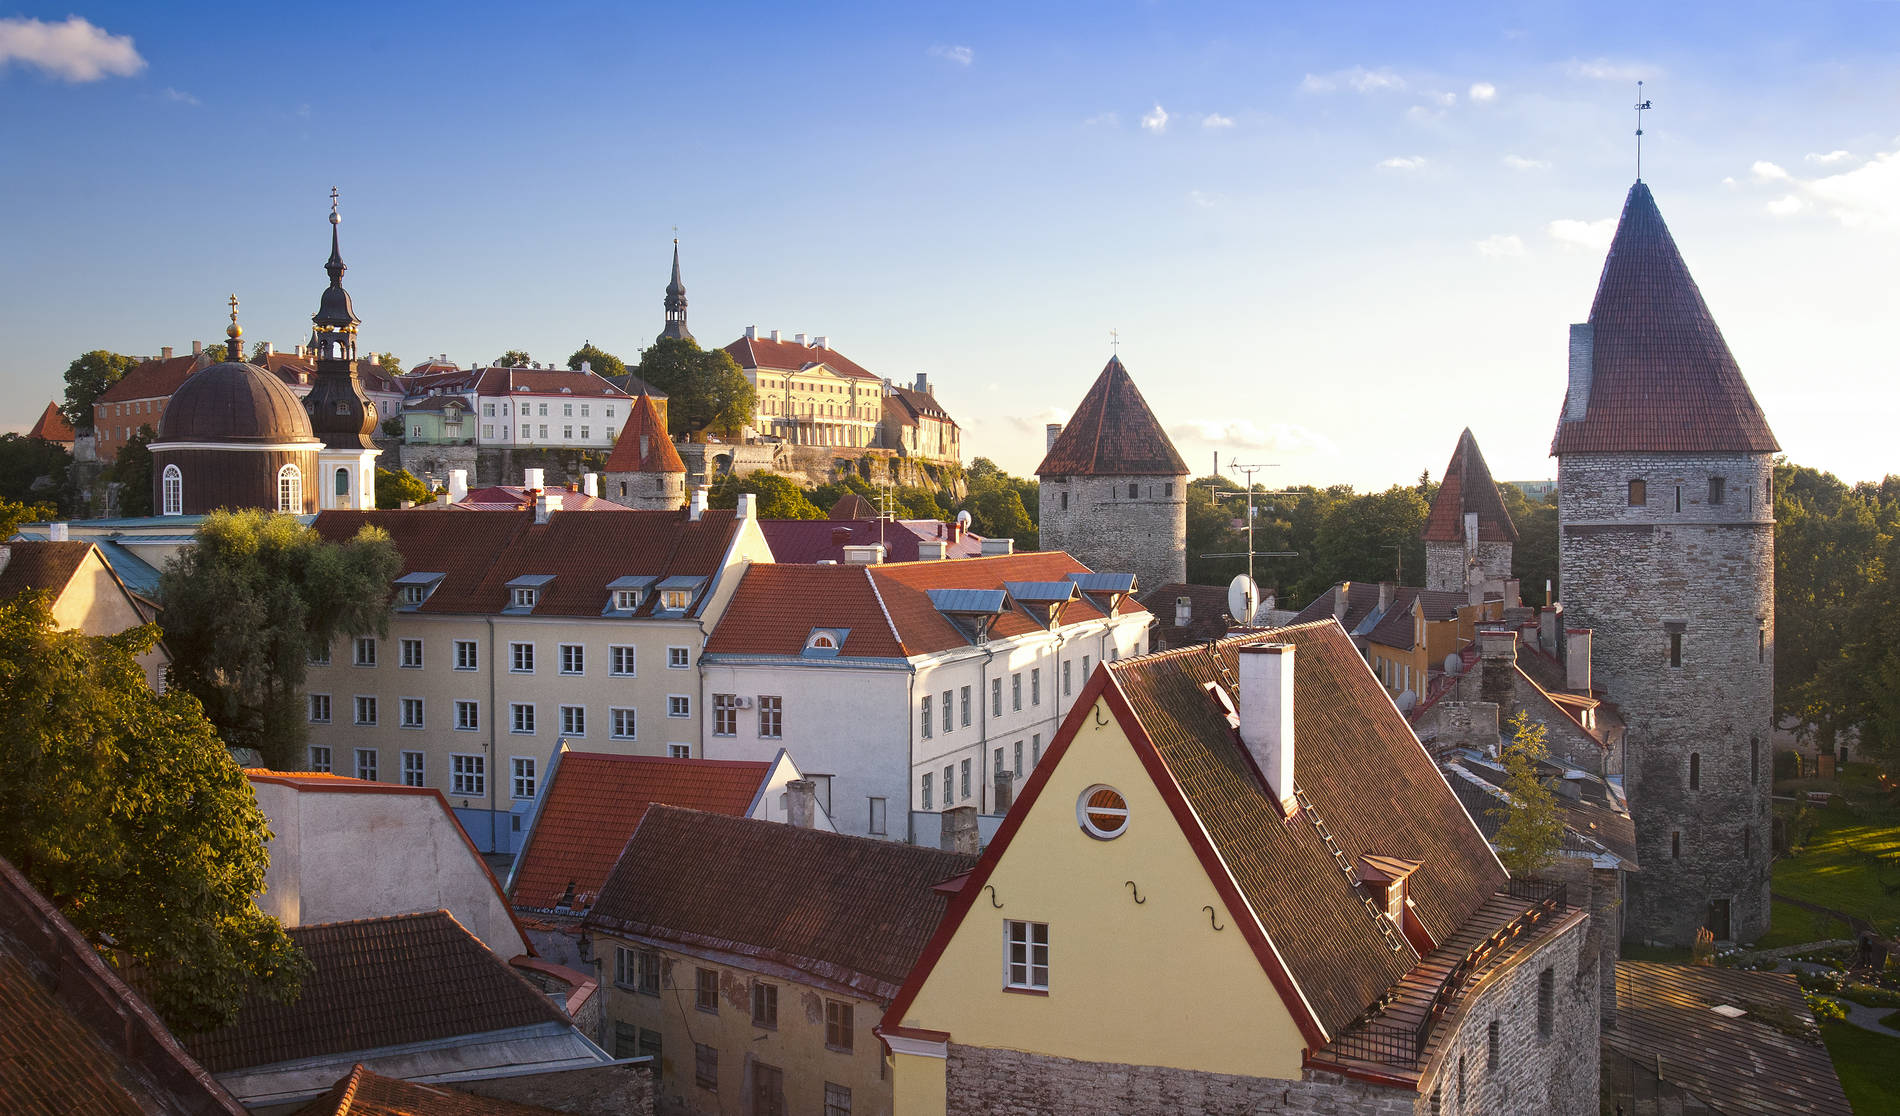 Aerial view of the Old Town, Toompea castle, and the medieval defence towers in Tallinn, Estonia